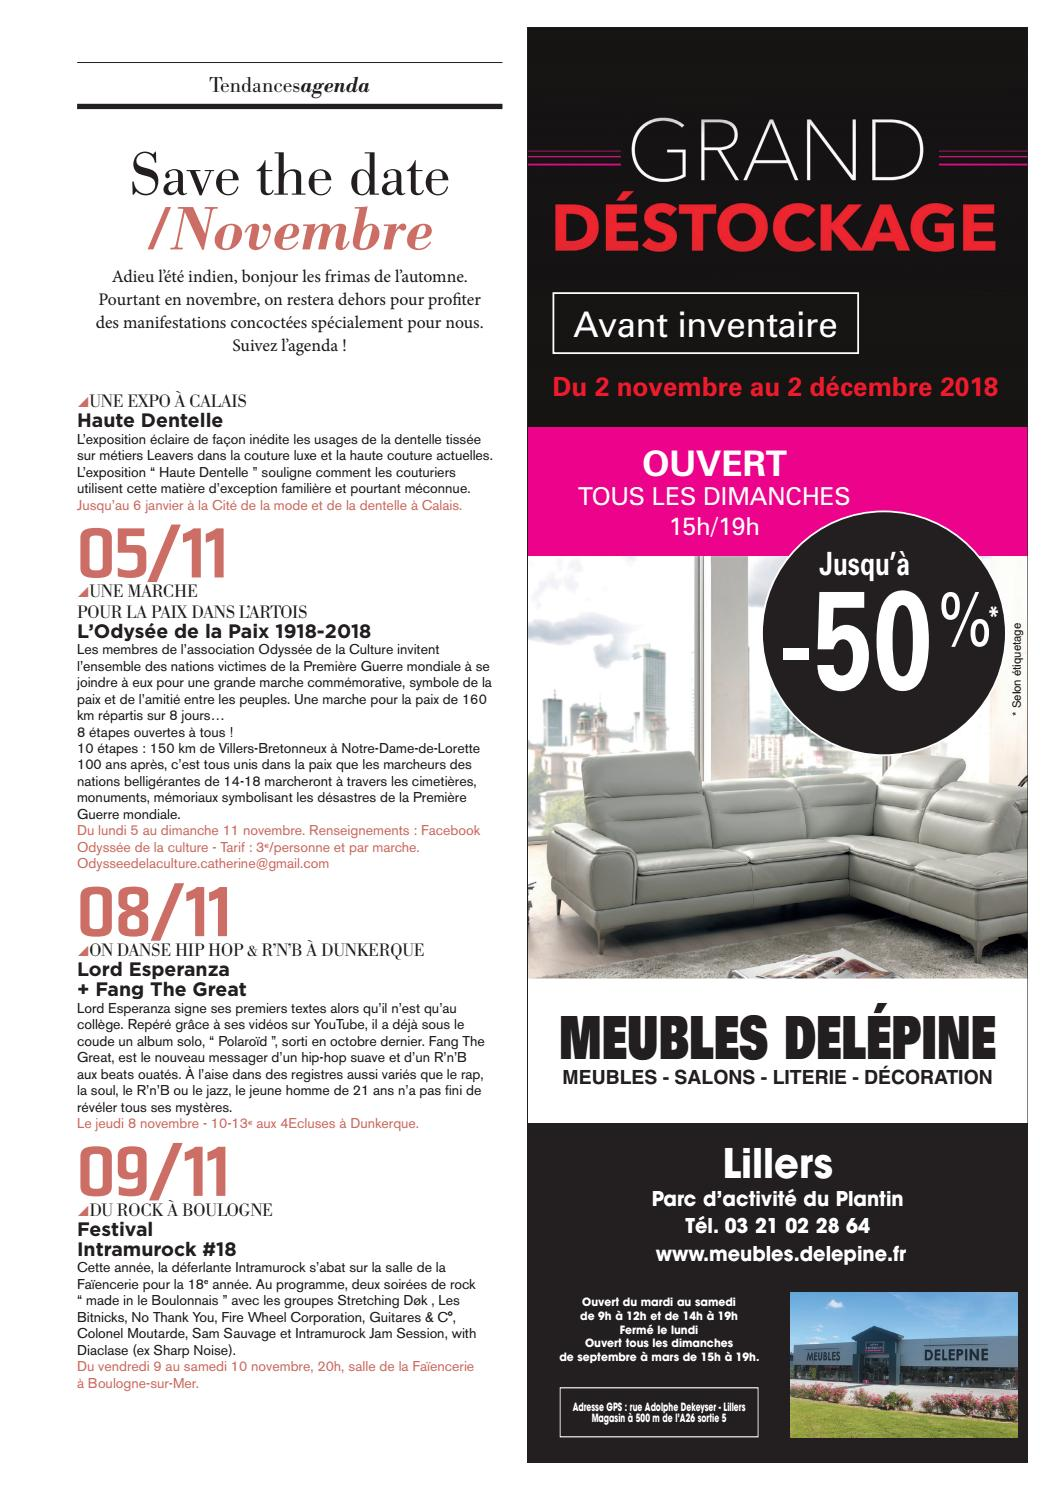 Meuble Delepine Tendances Co N83 Novembre 2018 By Groupe Nord Littoral Issuu